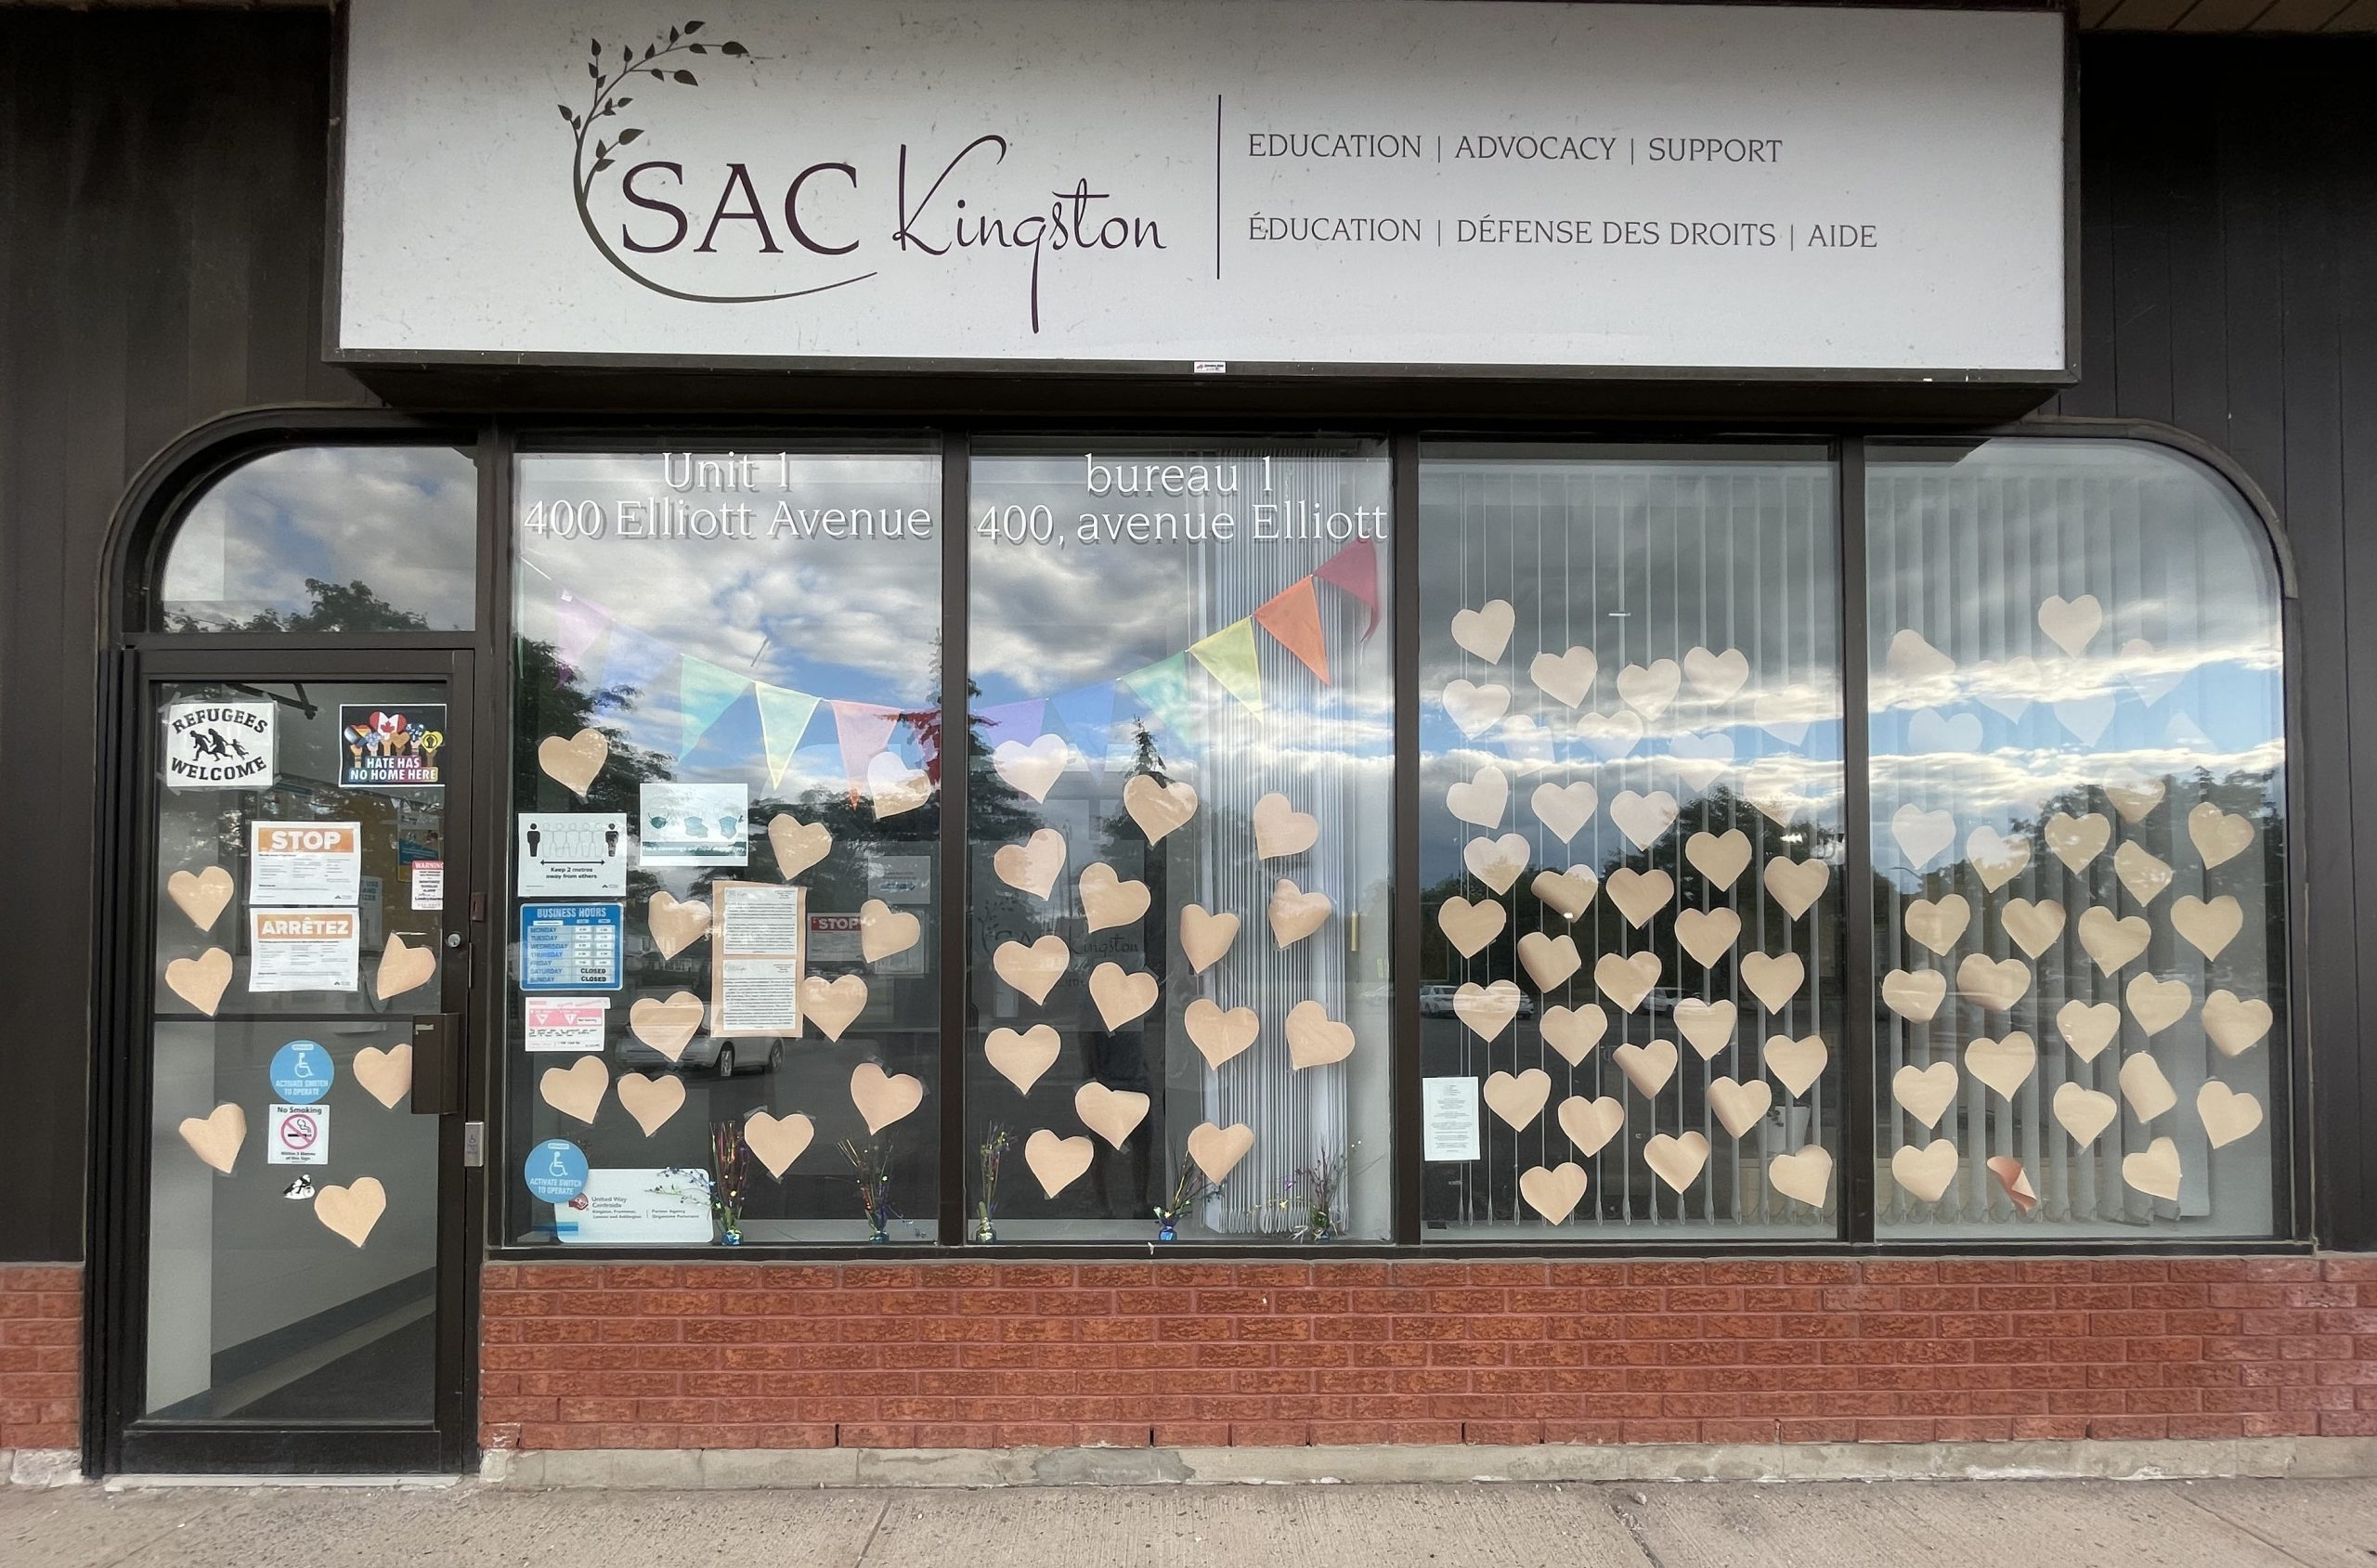 Image of SAC Kingston Office with their signage and windows covered with hearts.